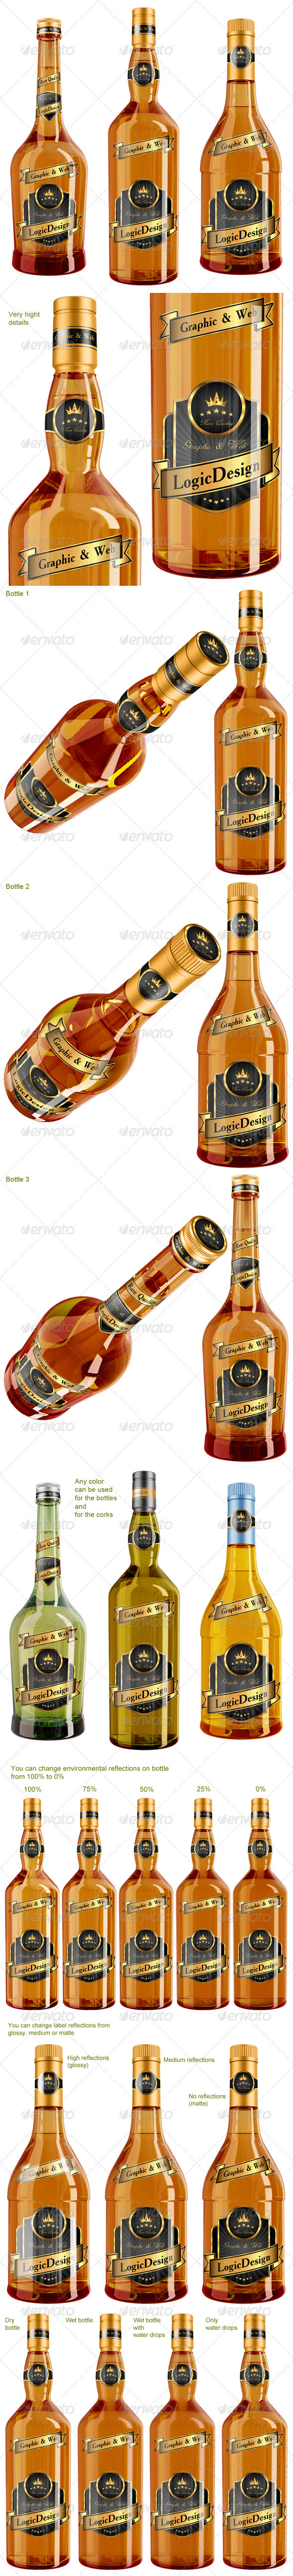 Whisky & Cognac Bottle Mock Up - Food and Drink Packaging